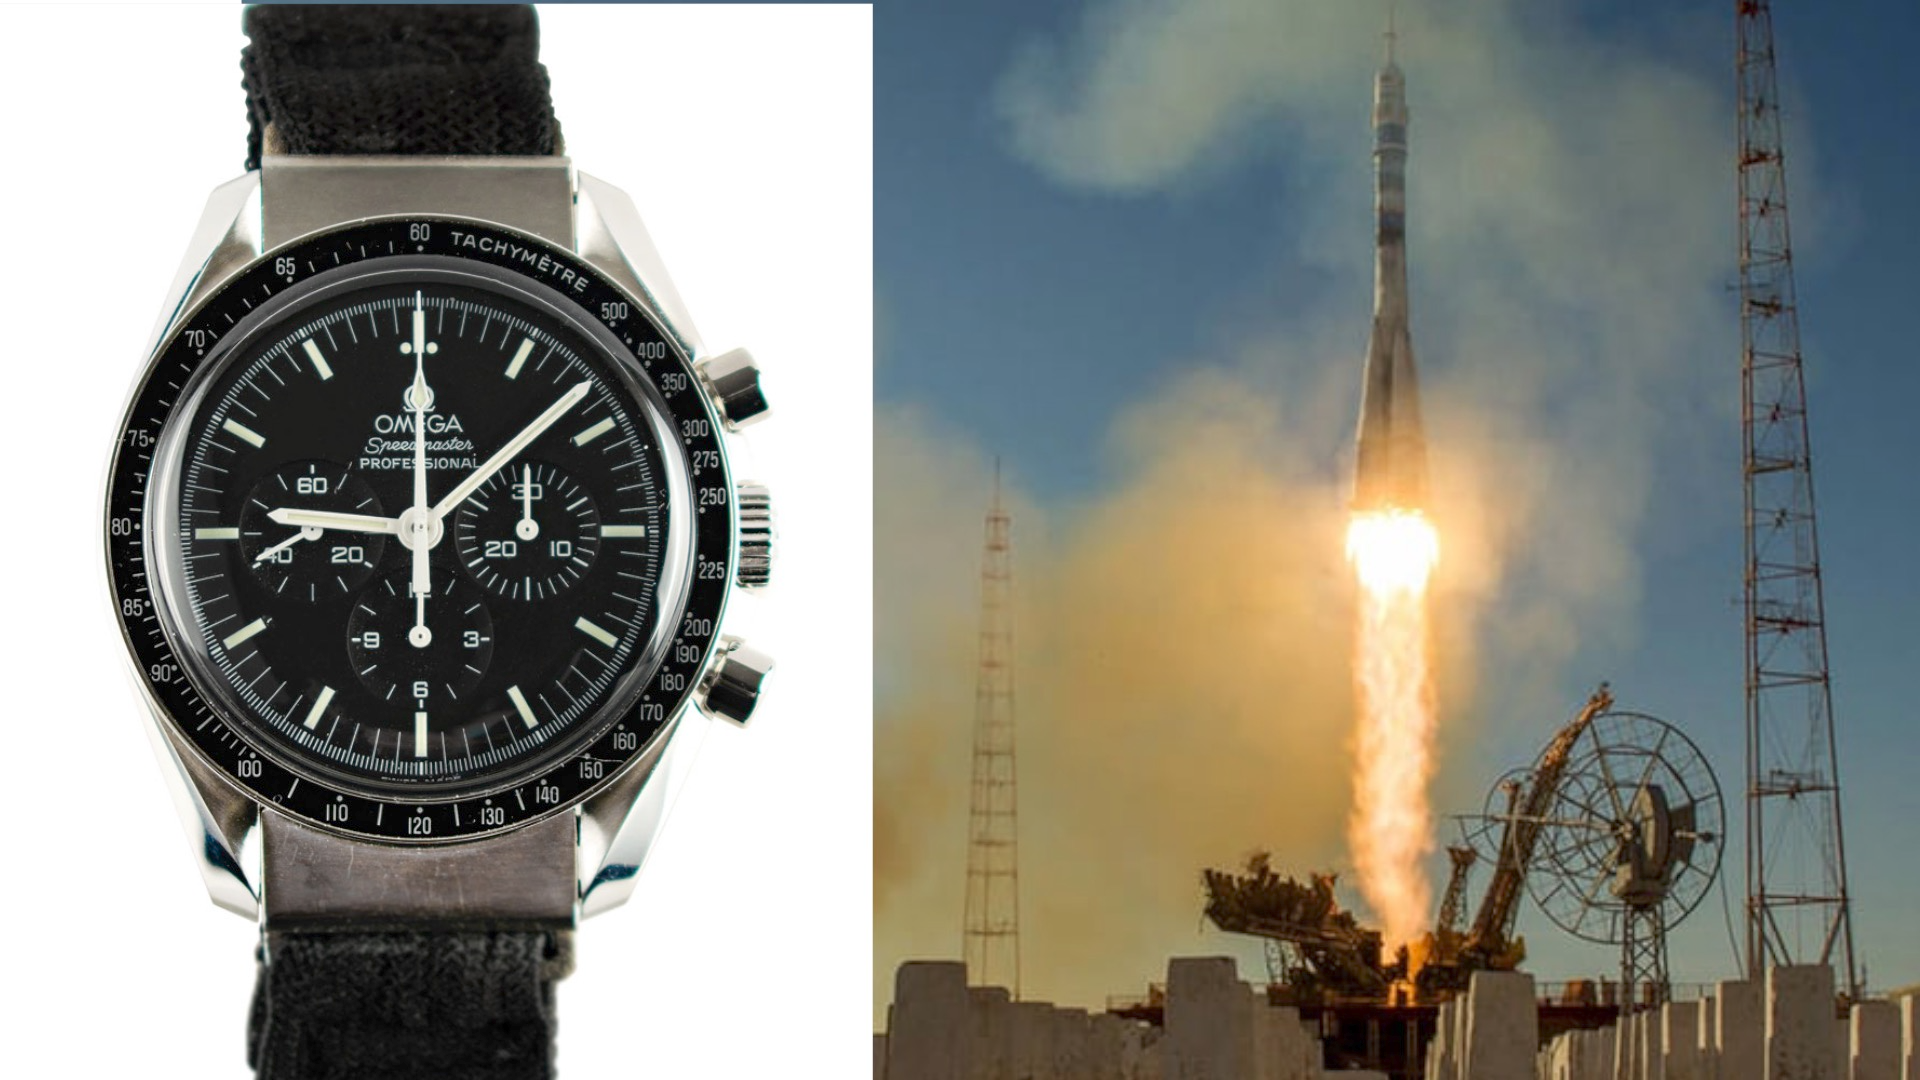 Would you pay $13,000USD for a Speedy that's spent 188 days in space? Because that's the current online bid…